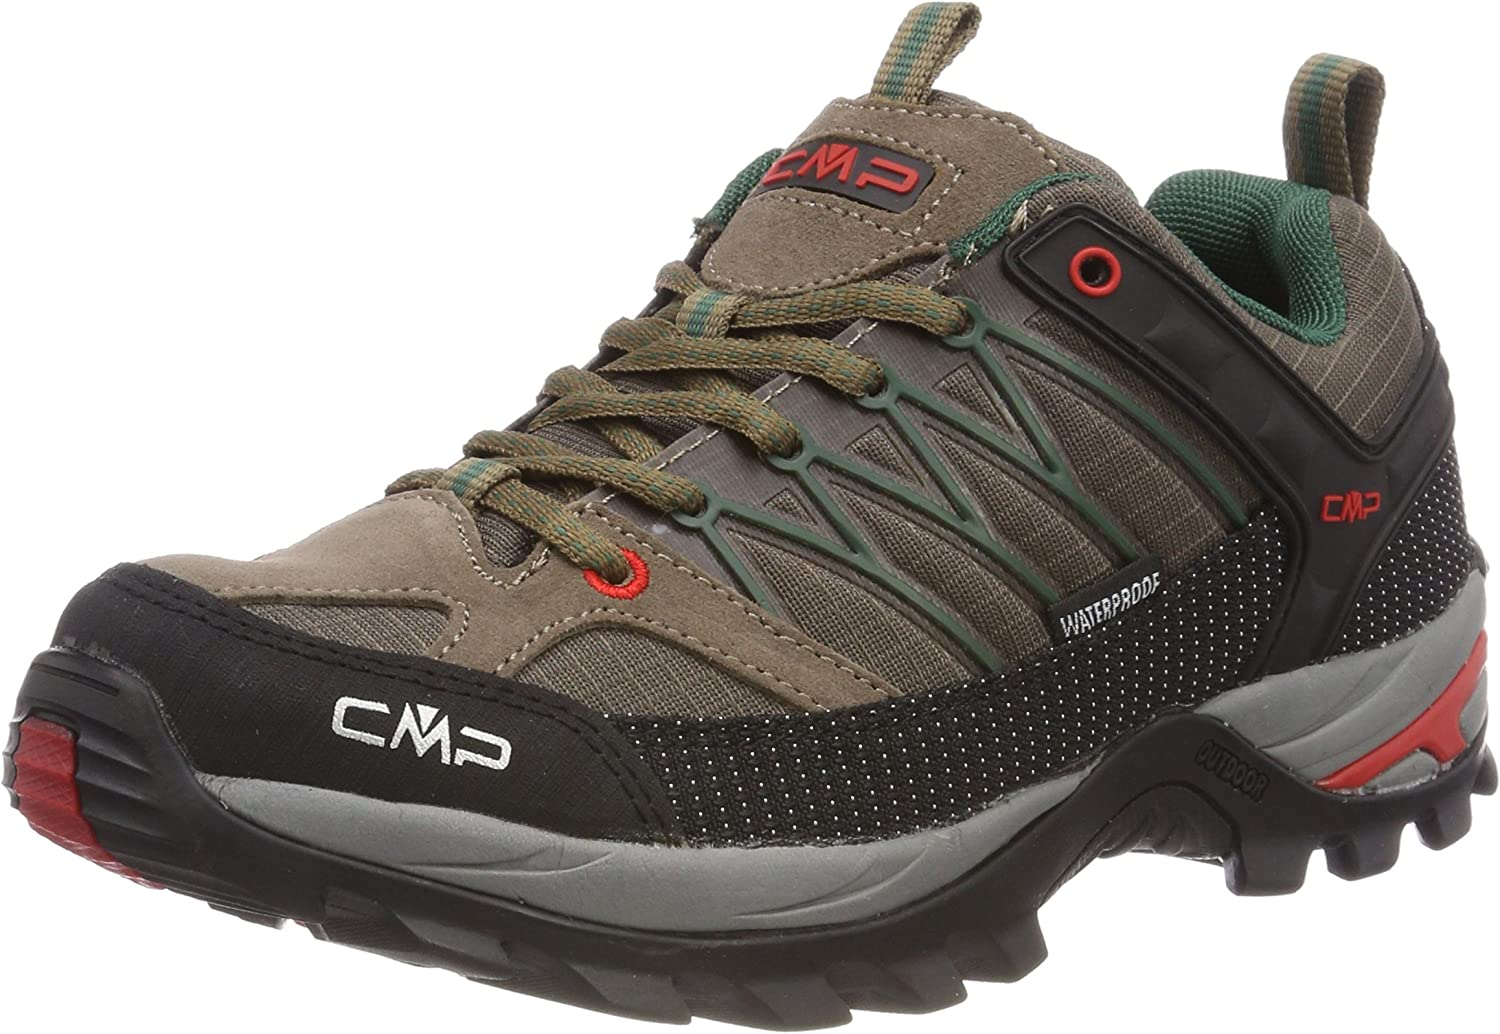 CMP Campagnolo Men's Rigel Low Rise Hiking shoes